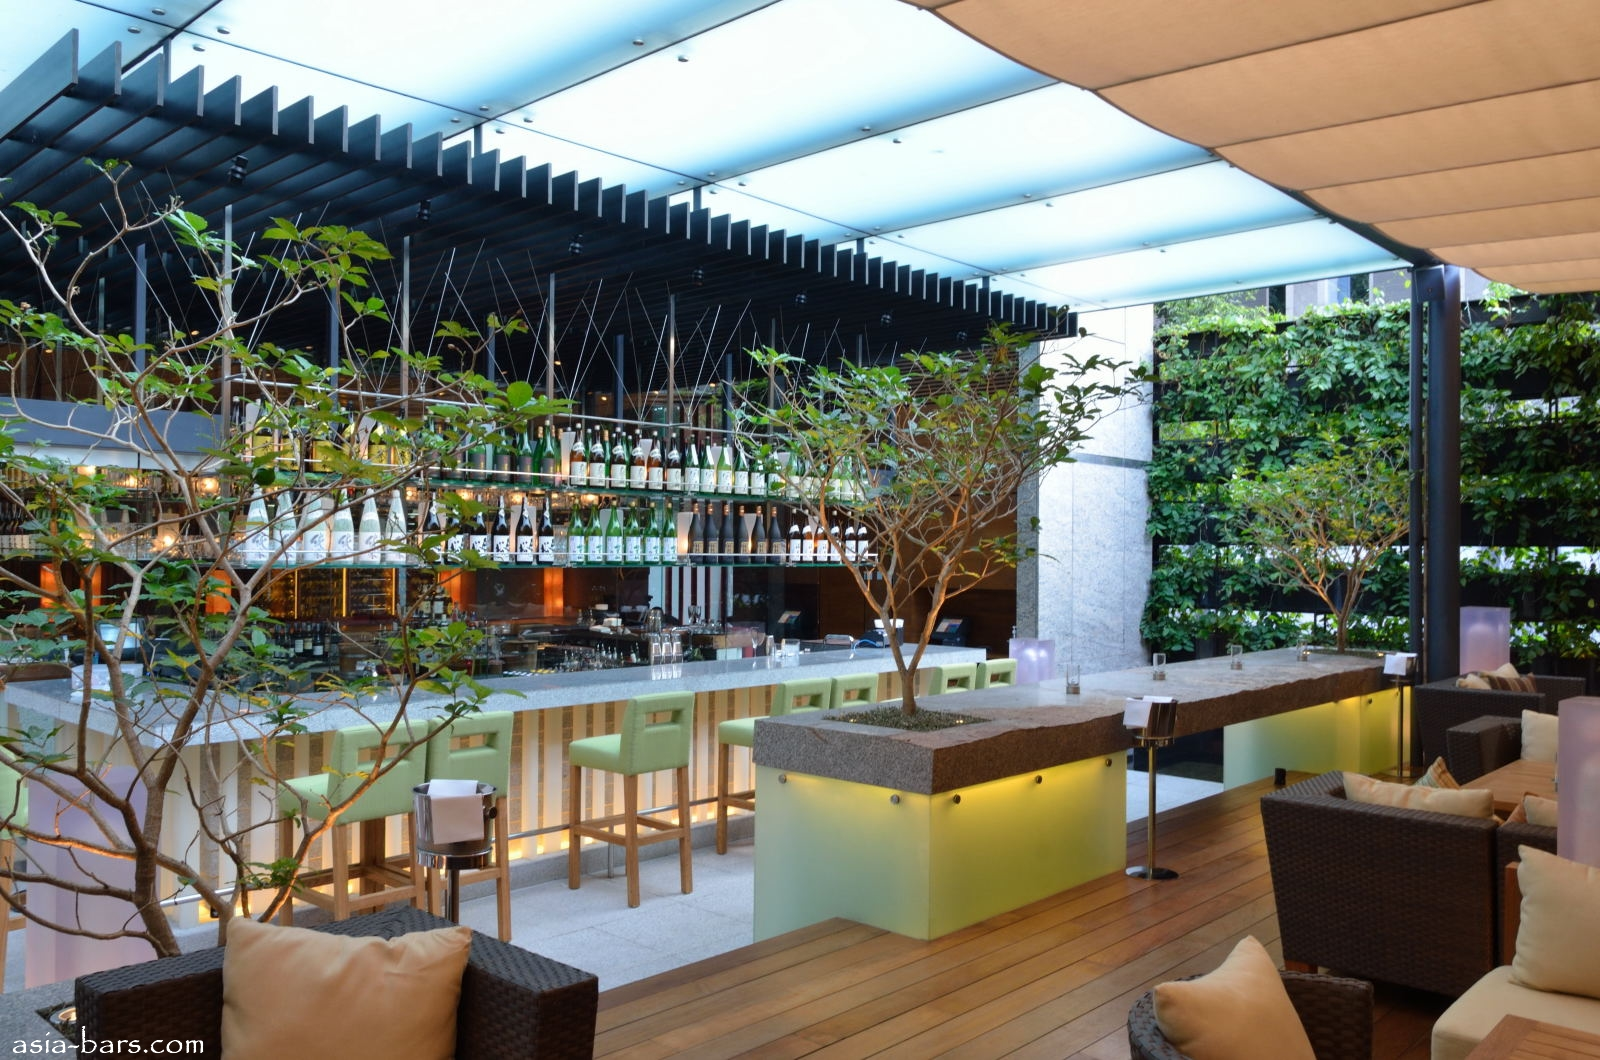 Zuma bangkok globally acclaimed restaurant group opens for Restaurant with terrace